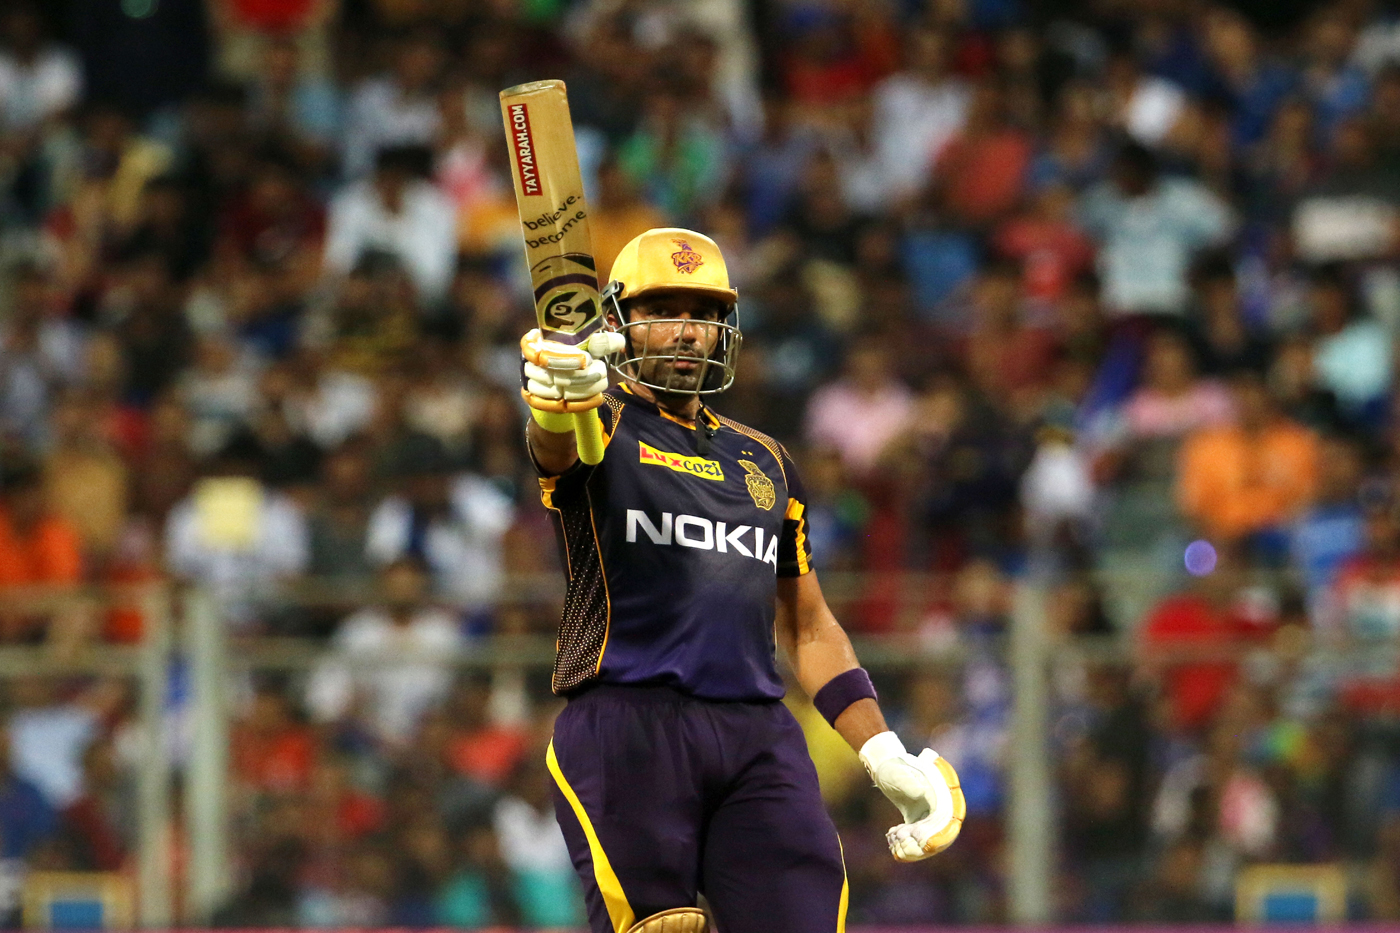 robin uthappa-robin uthappa after scoring 50 in kkr purple jersey